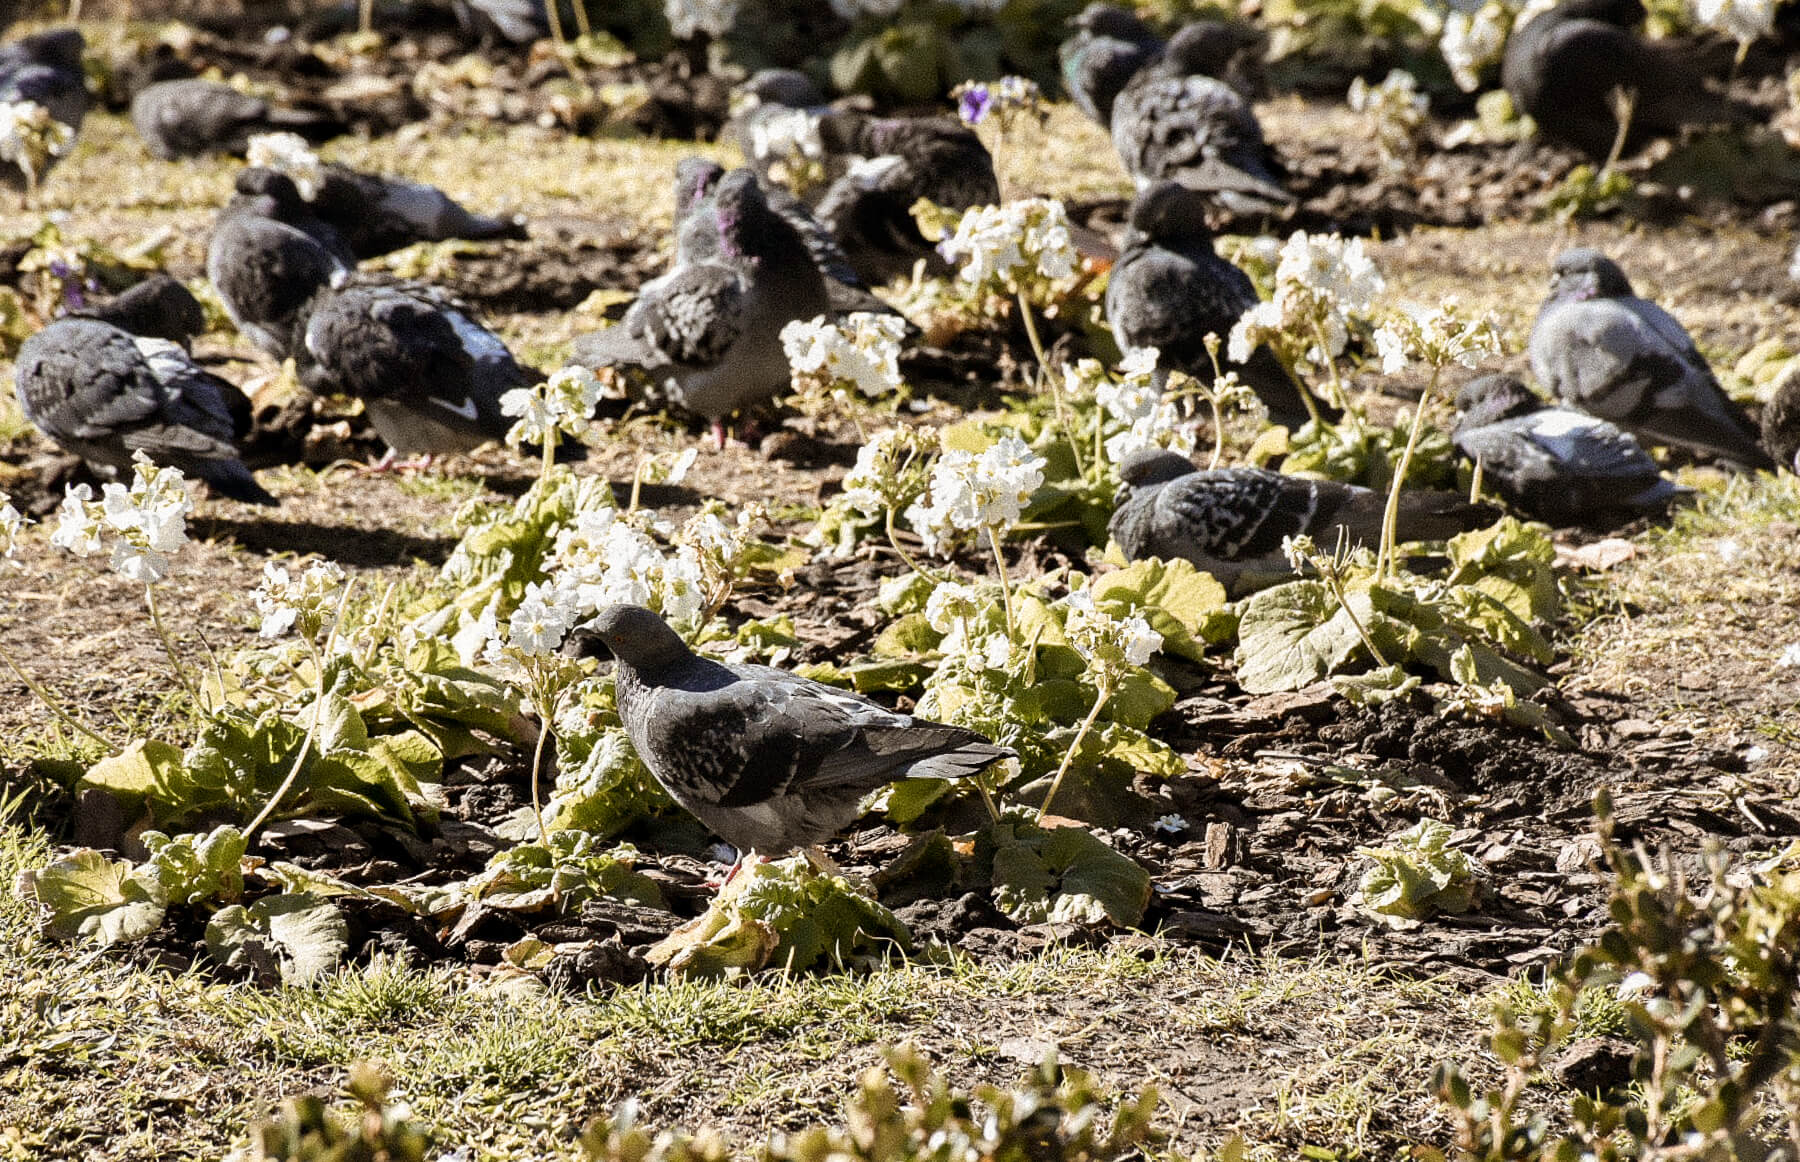 A flower garden filled with resting pigeons